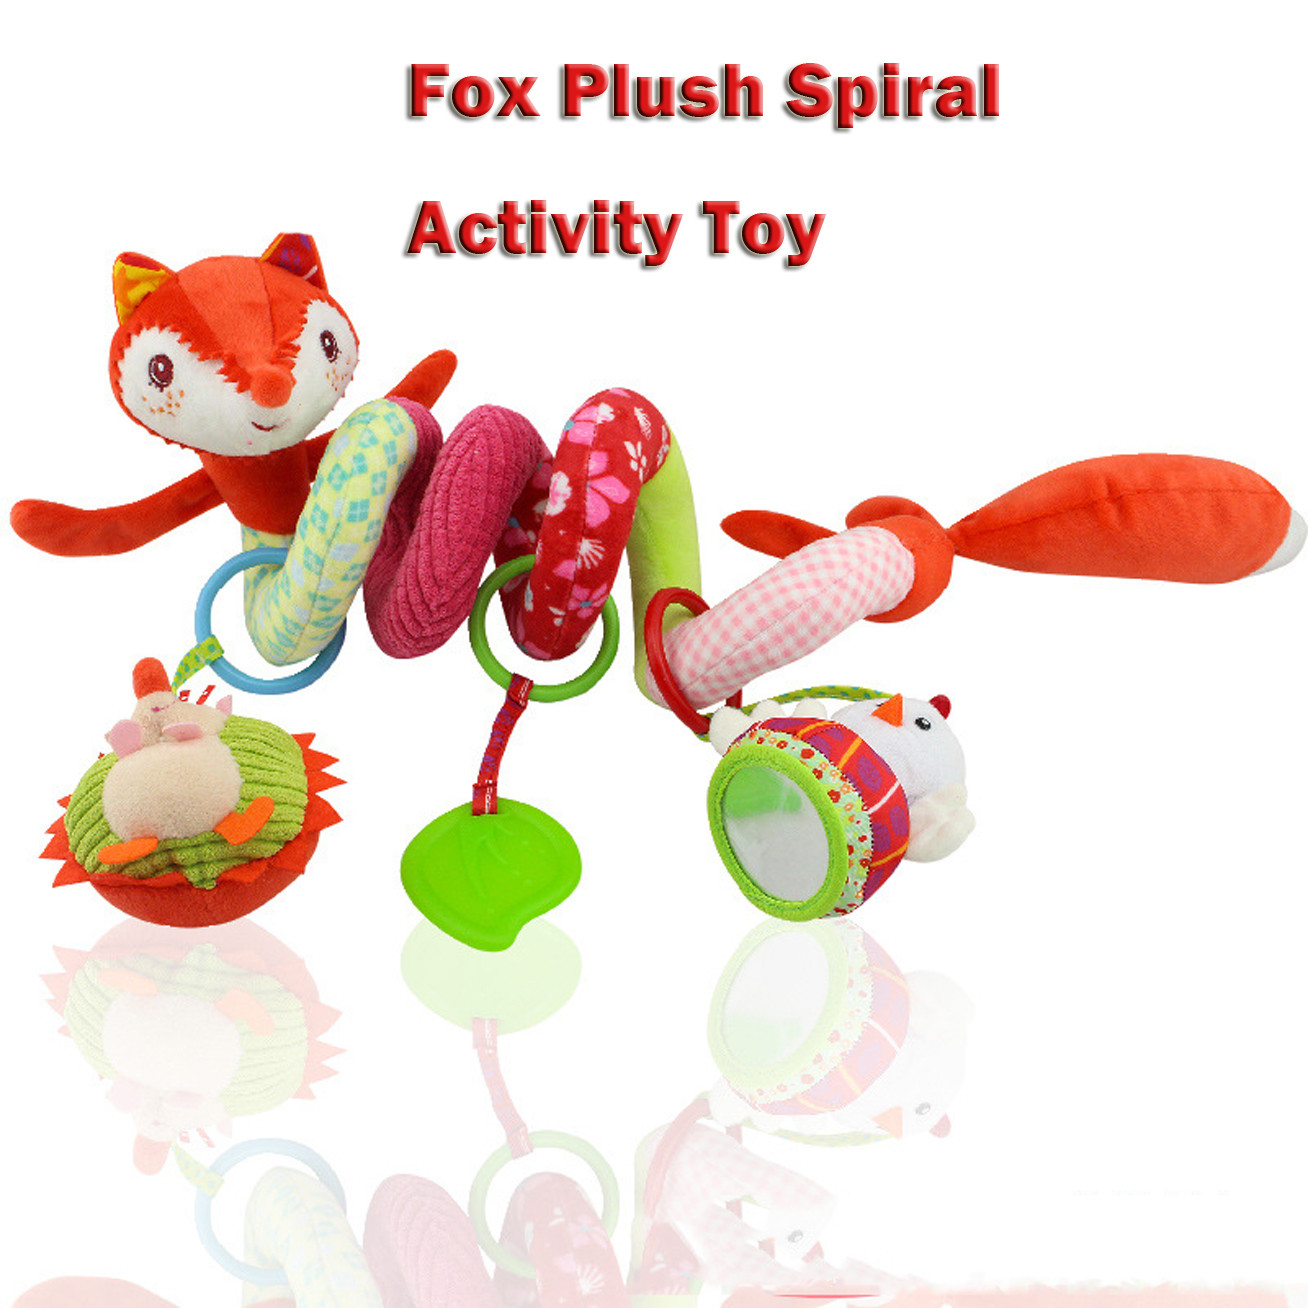 Baby Toys Rattles Soft Stroller Car Seat Activity Toy with Rattle Teether Mirror Fox Plush Spiral Hanging Bell Educational Gift